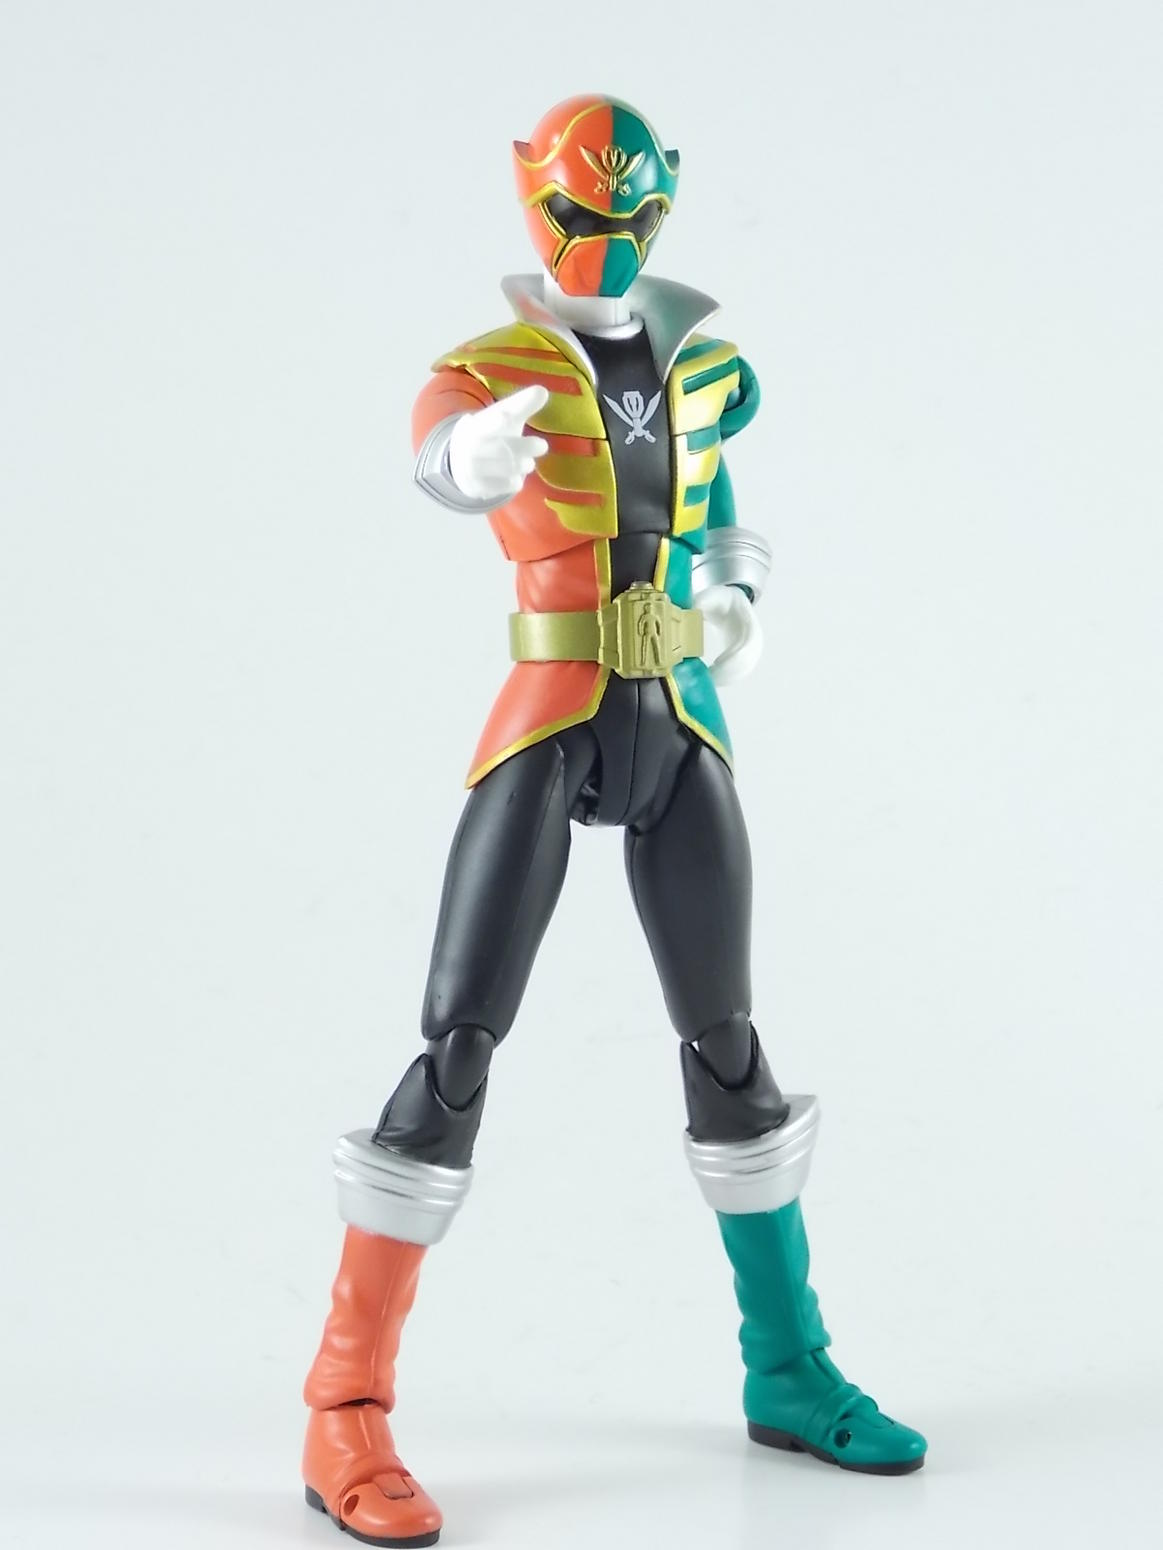 S.H. Figuarts Gokai Christmas Gallery by Den-O - Tokunation